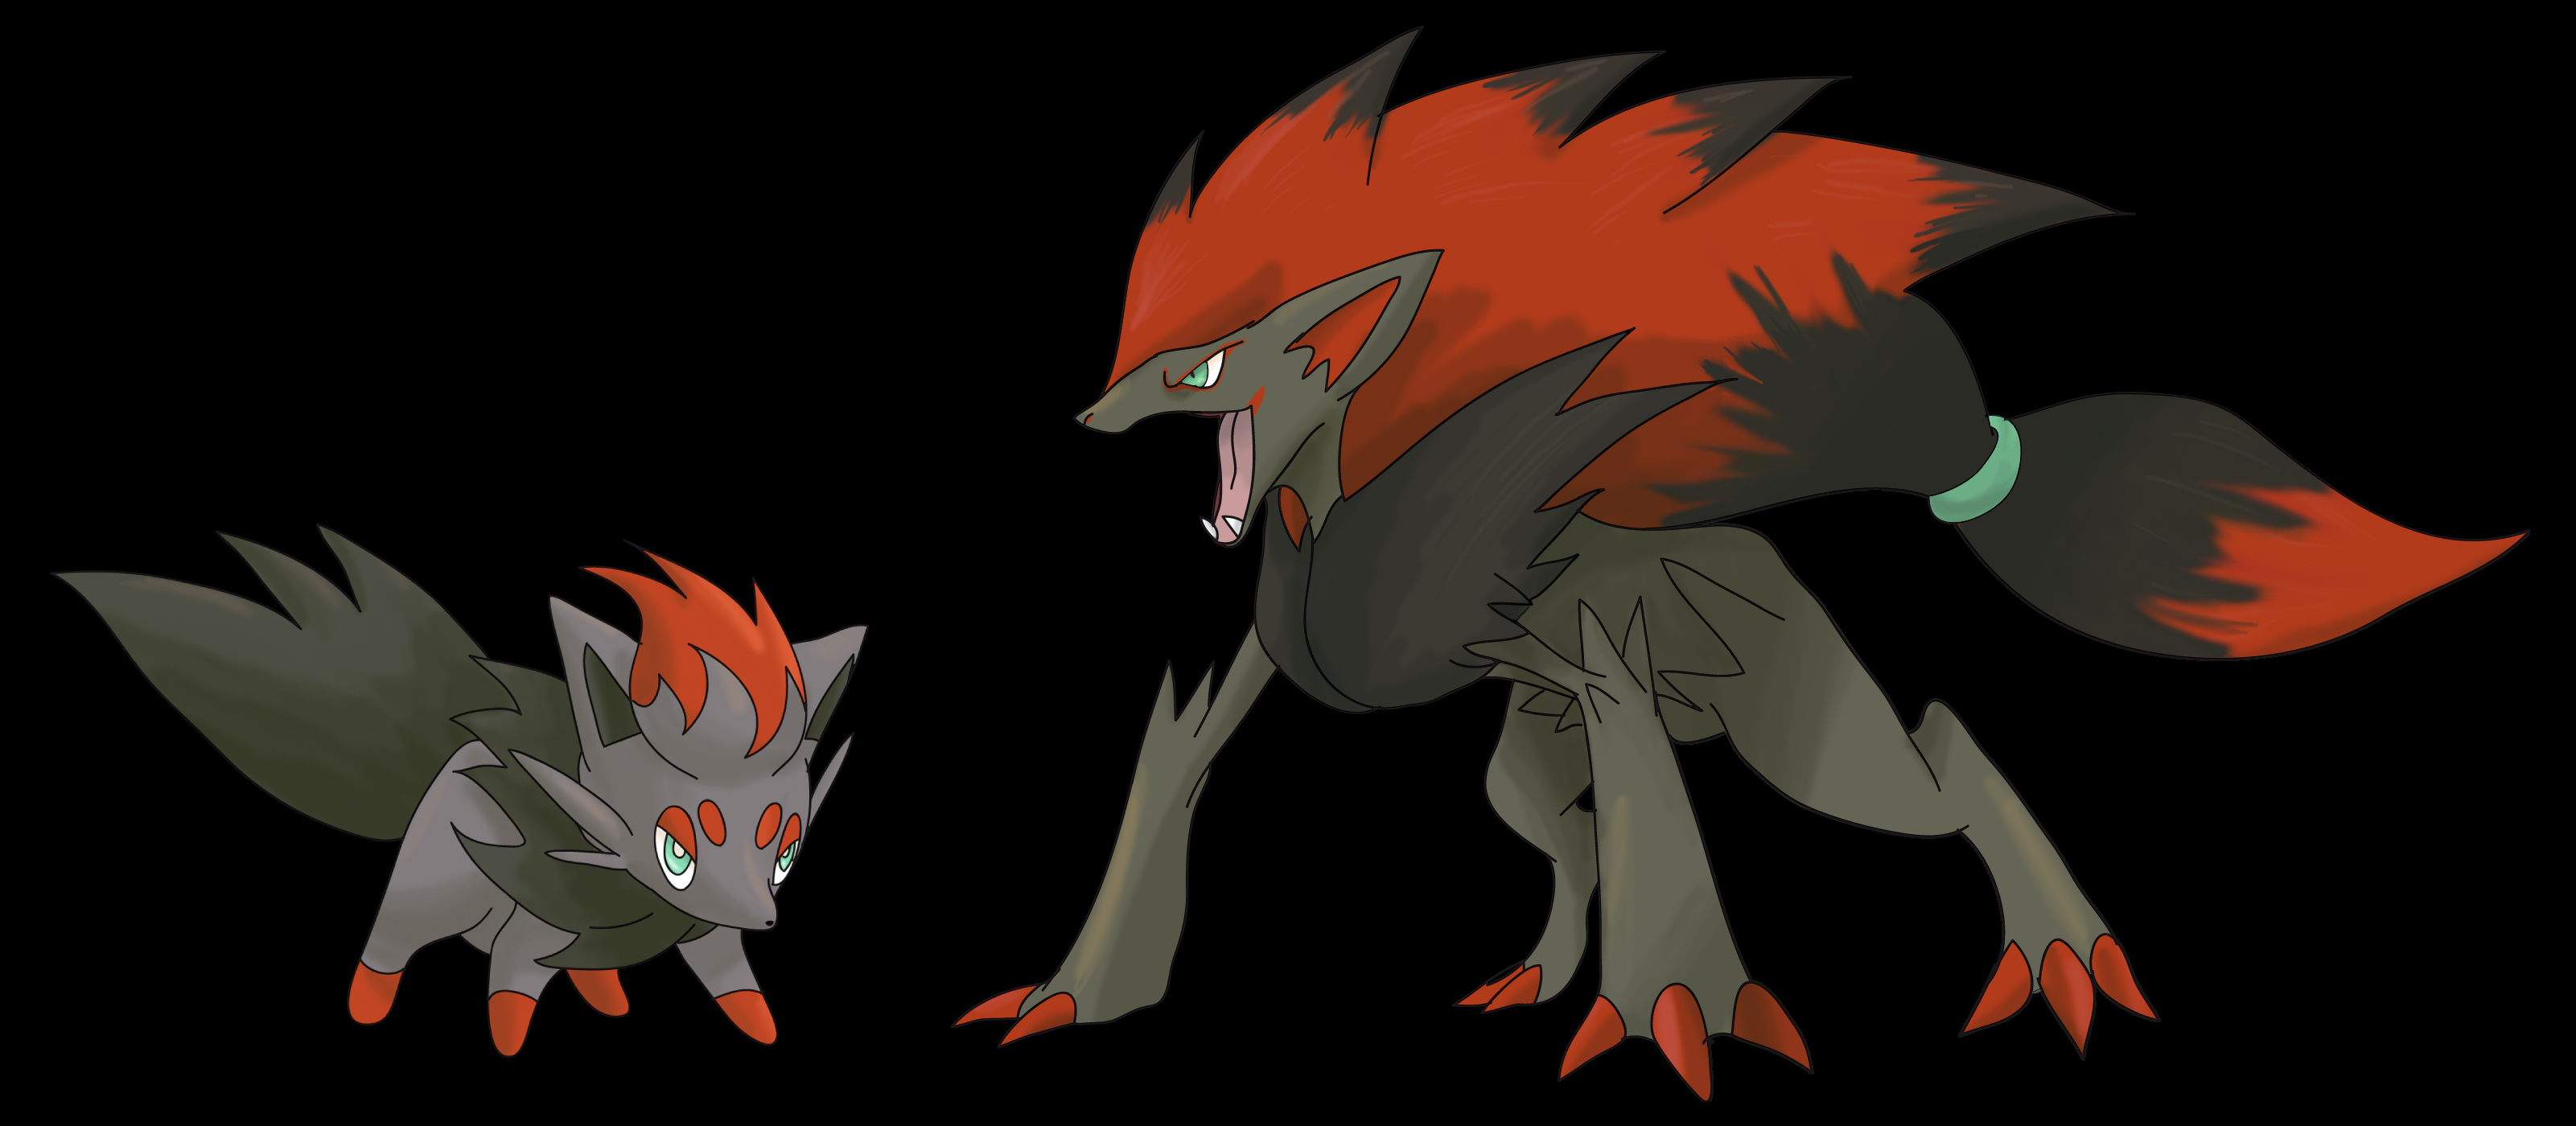 Hd Wallpapers Zoroark And Zorua